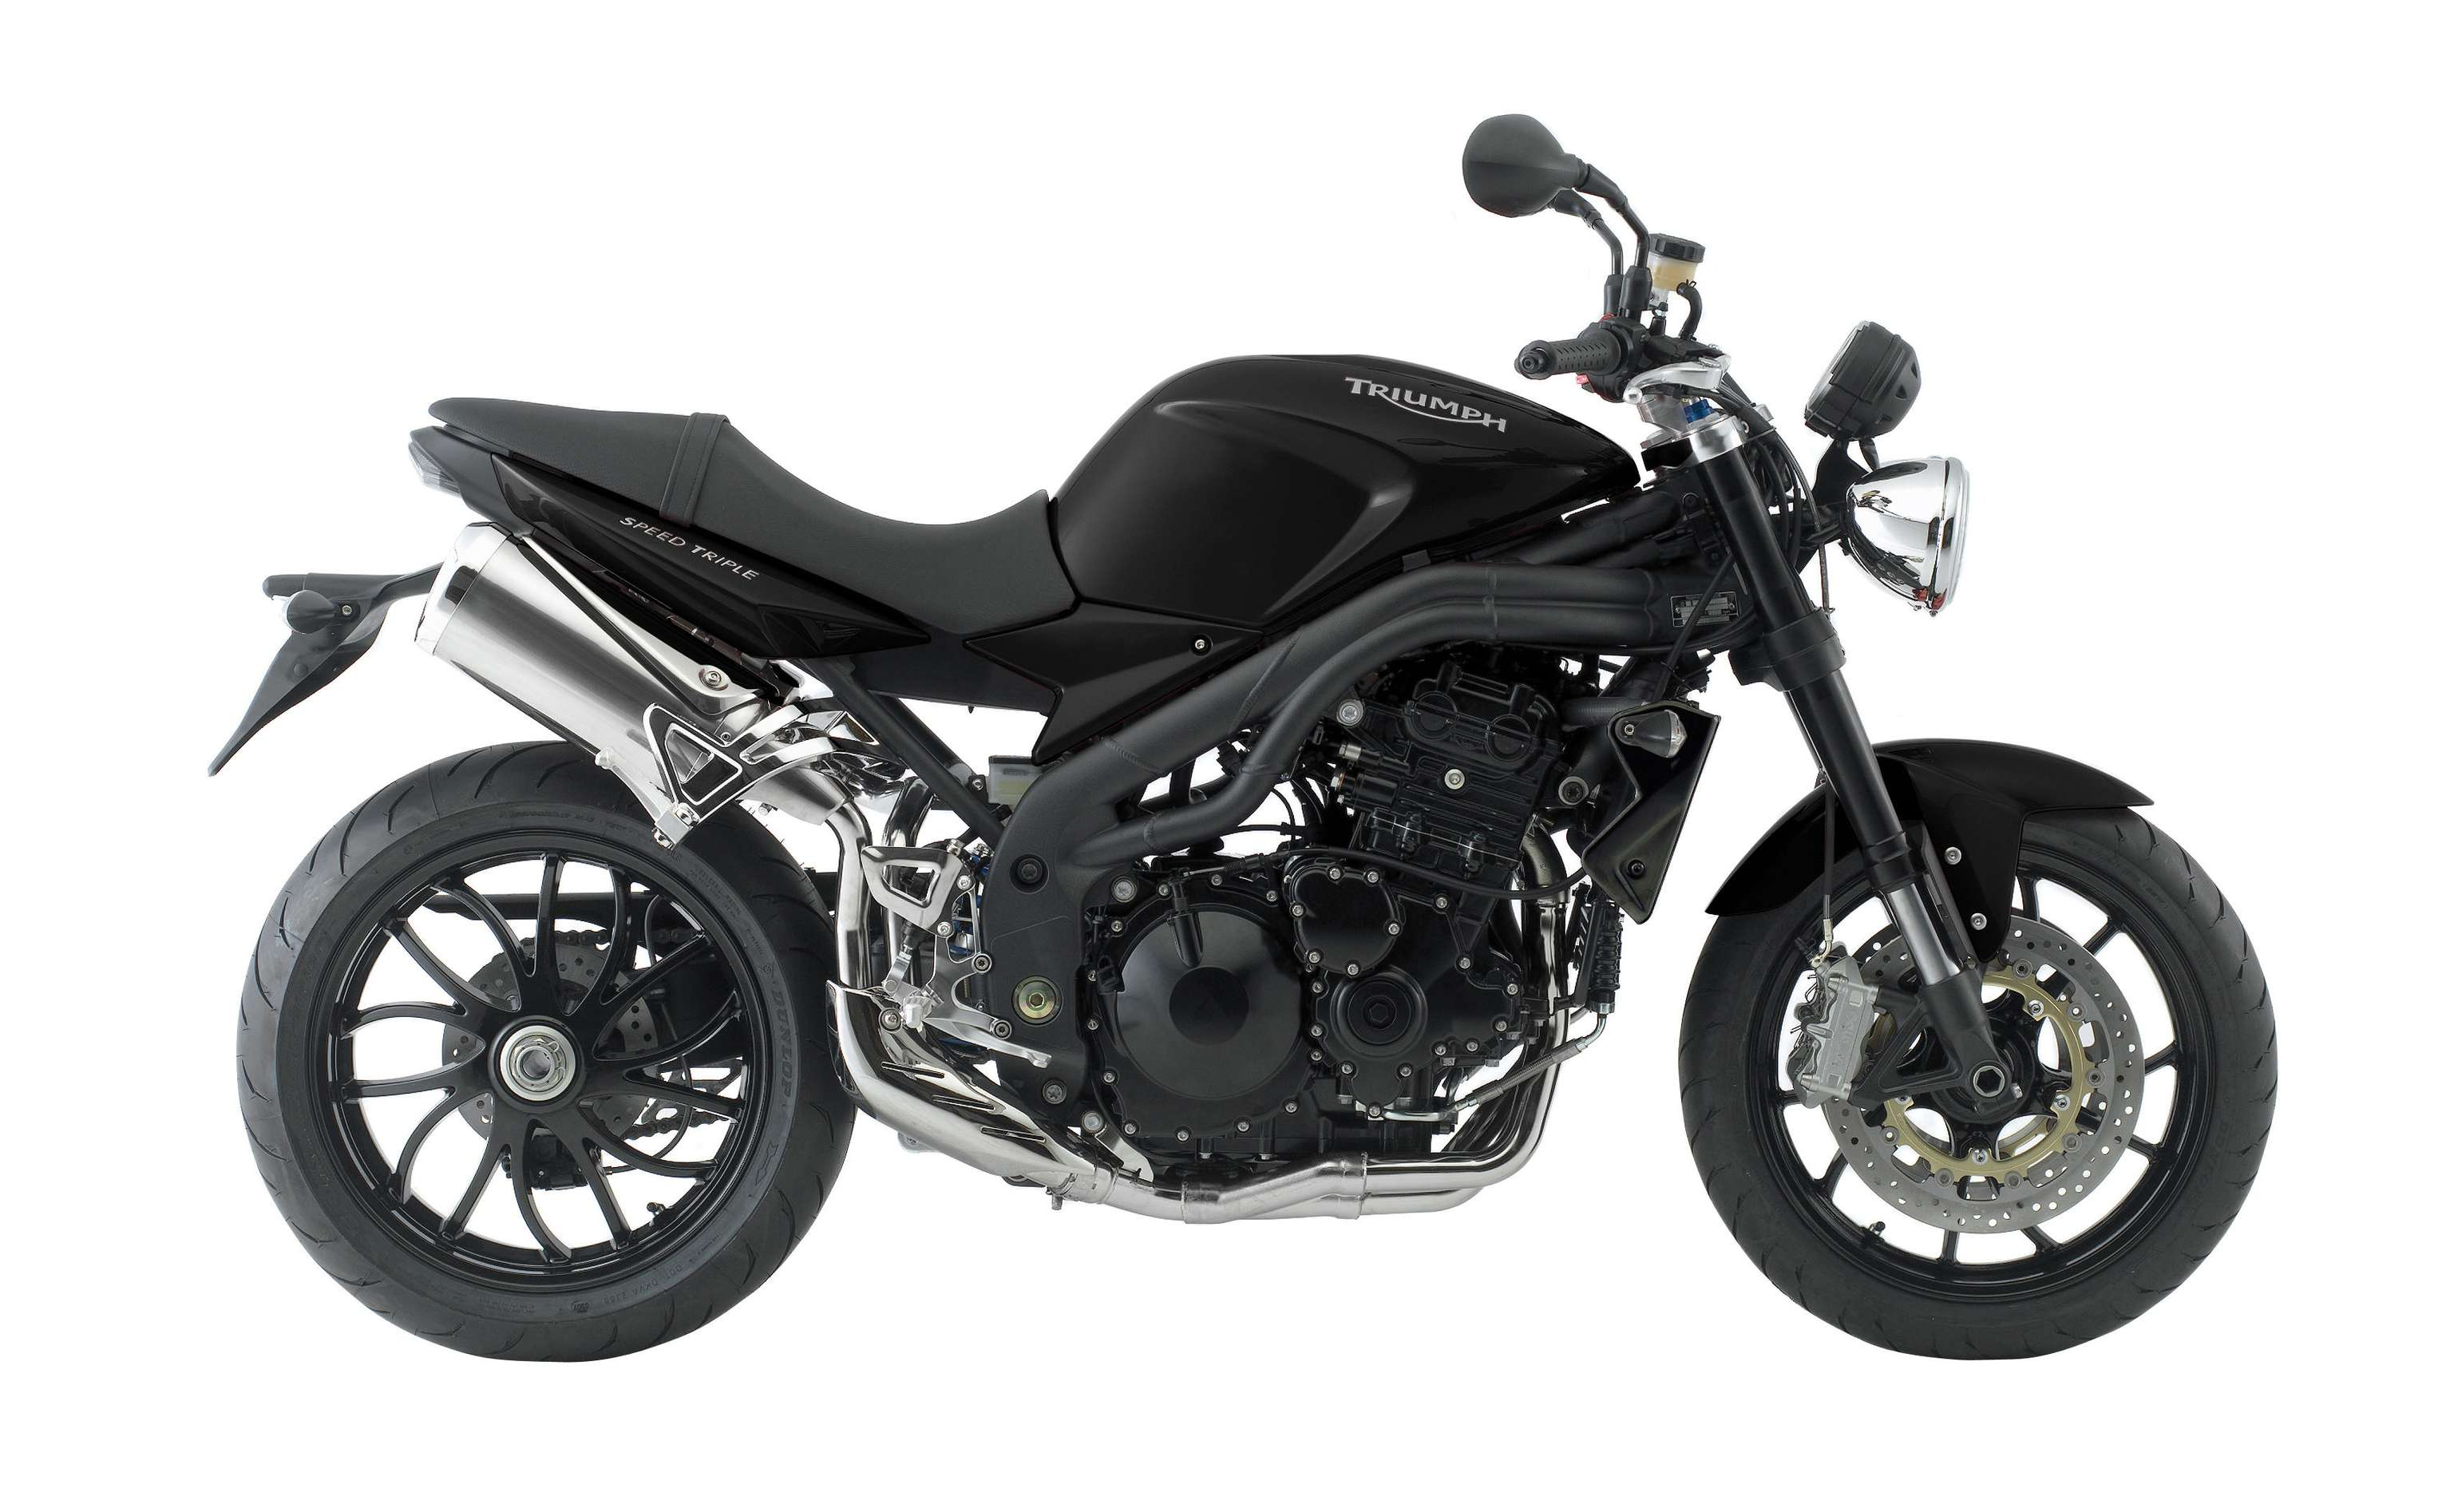 Triumph Speed Triple 1050 #7014015